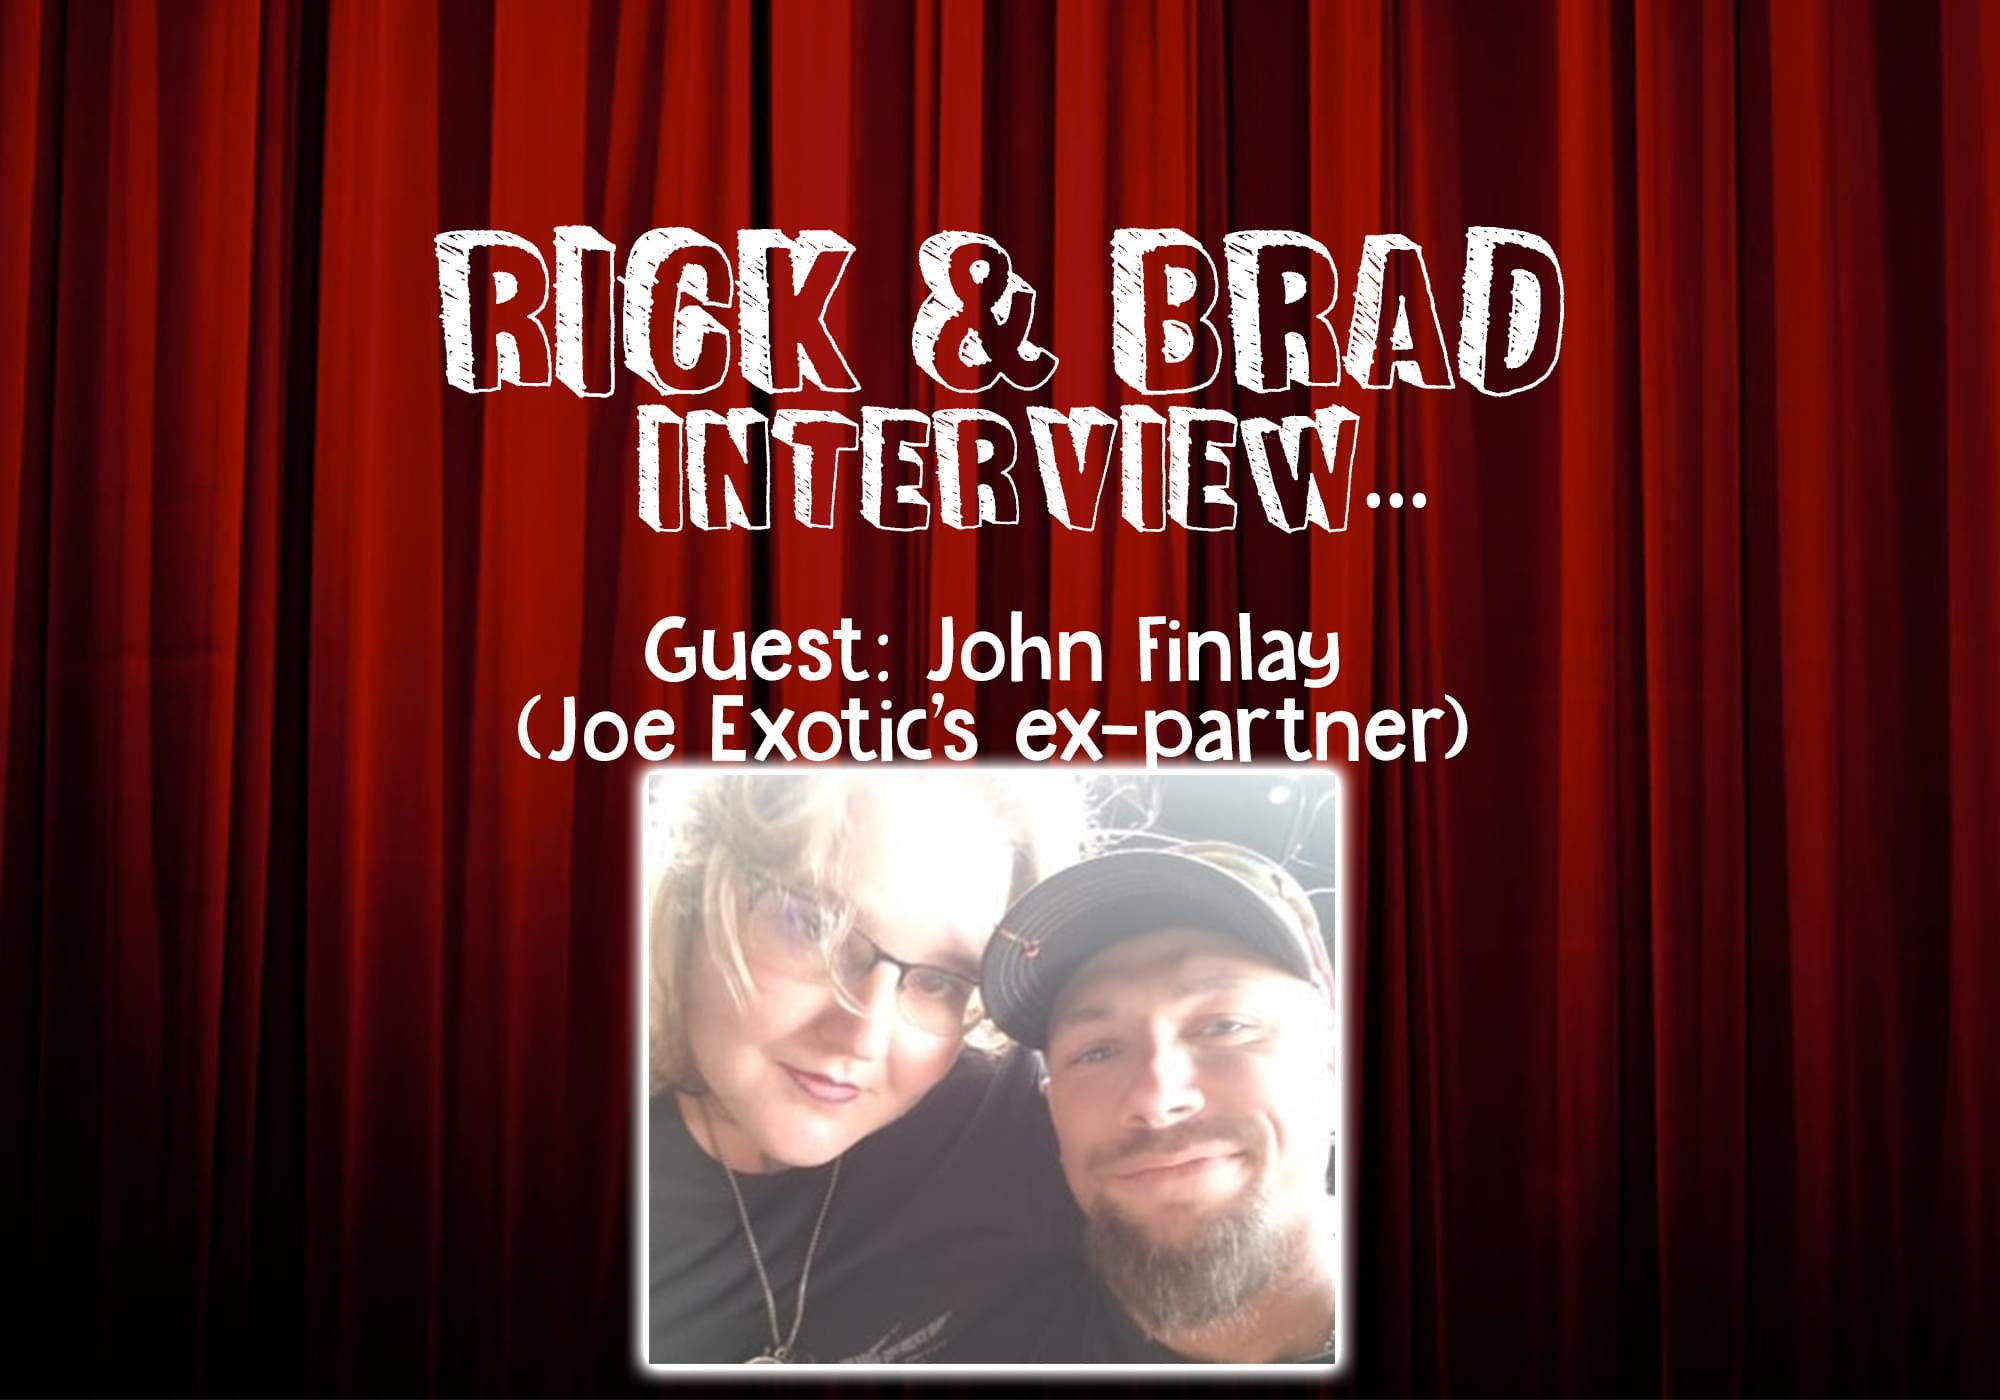 John Finlay Interview (Joe Exotic's ex-partner)